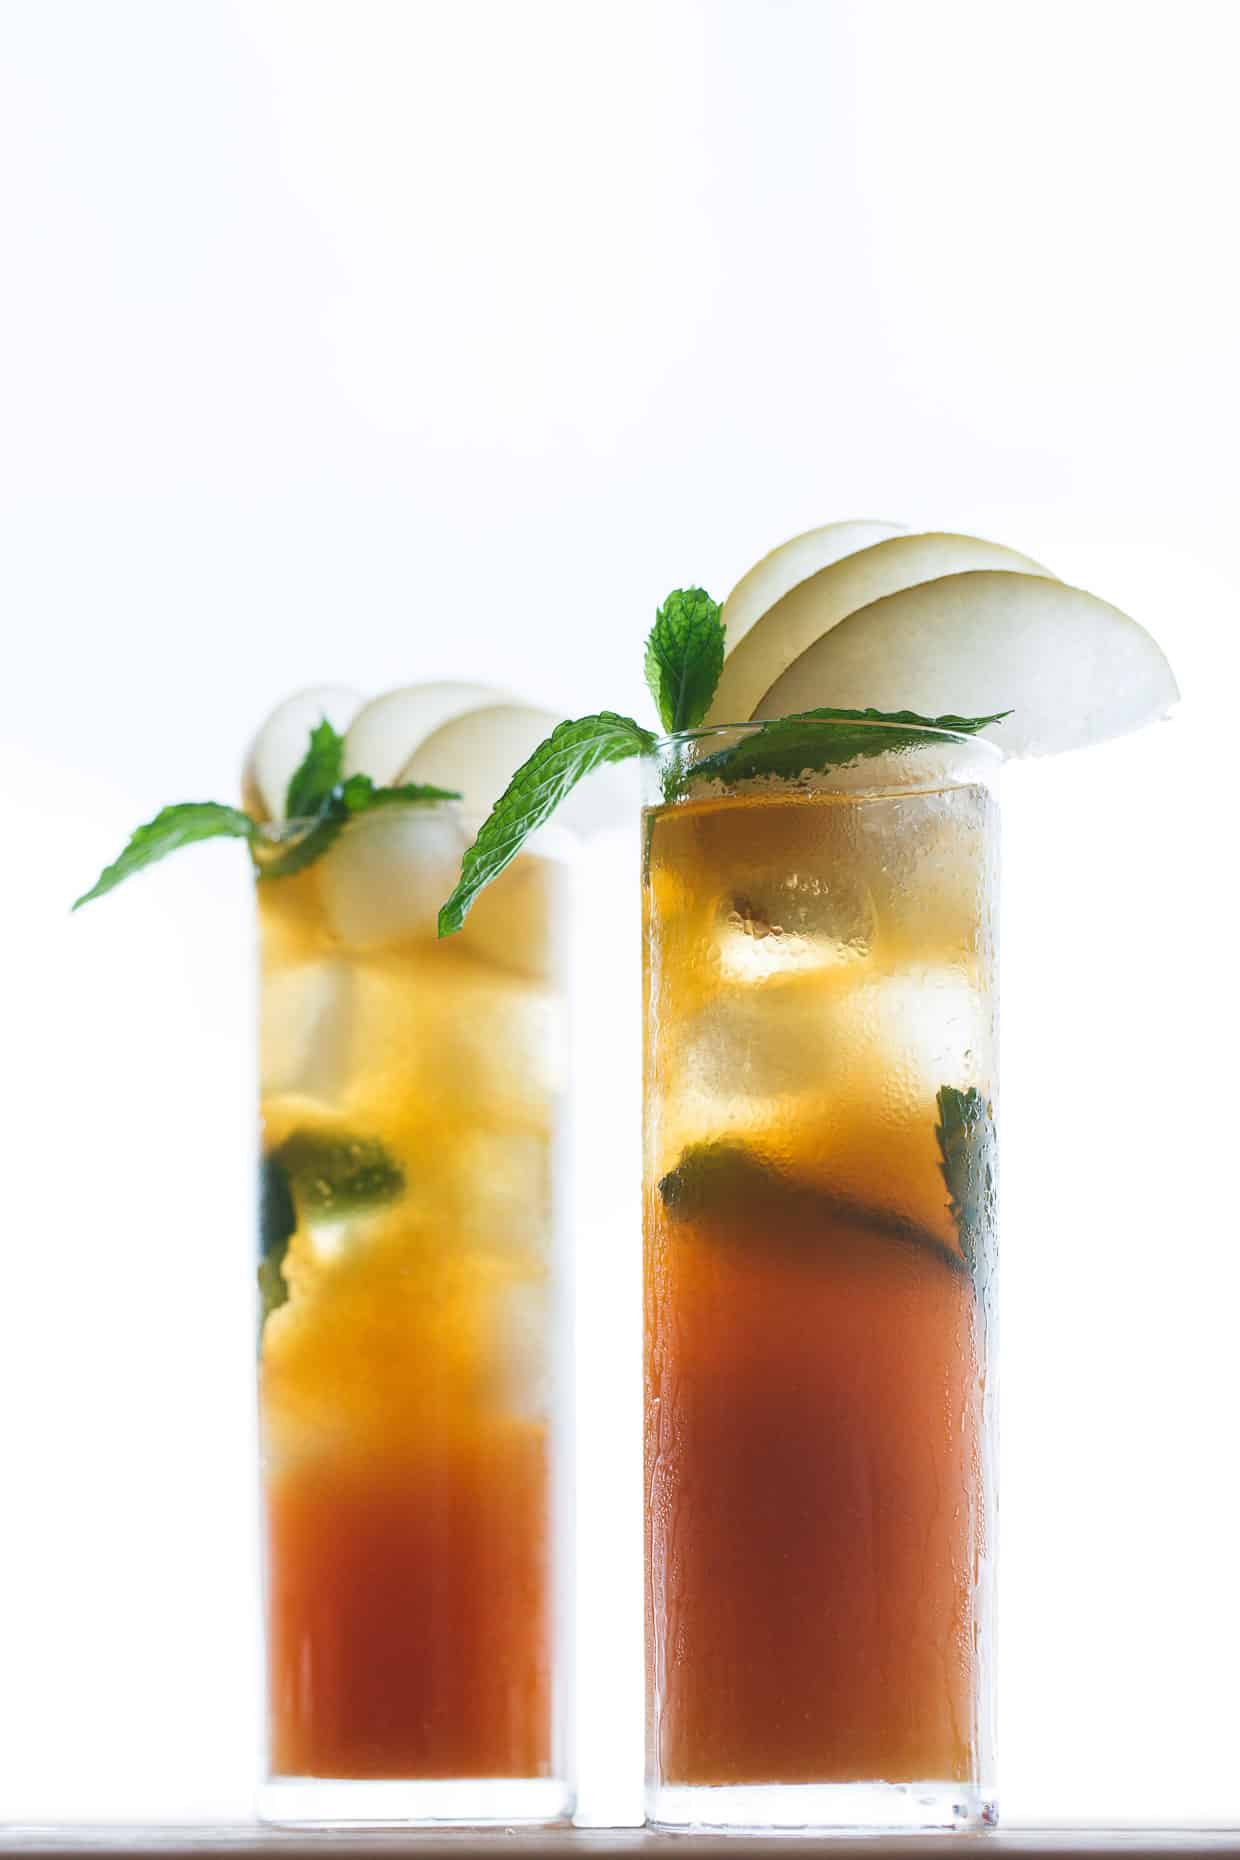 iced tea rhubarb iced tea ginger iced tea iced lychees darkside iced ...